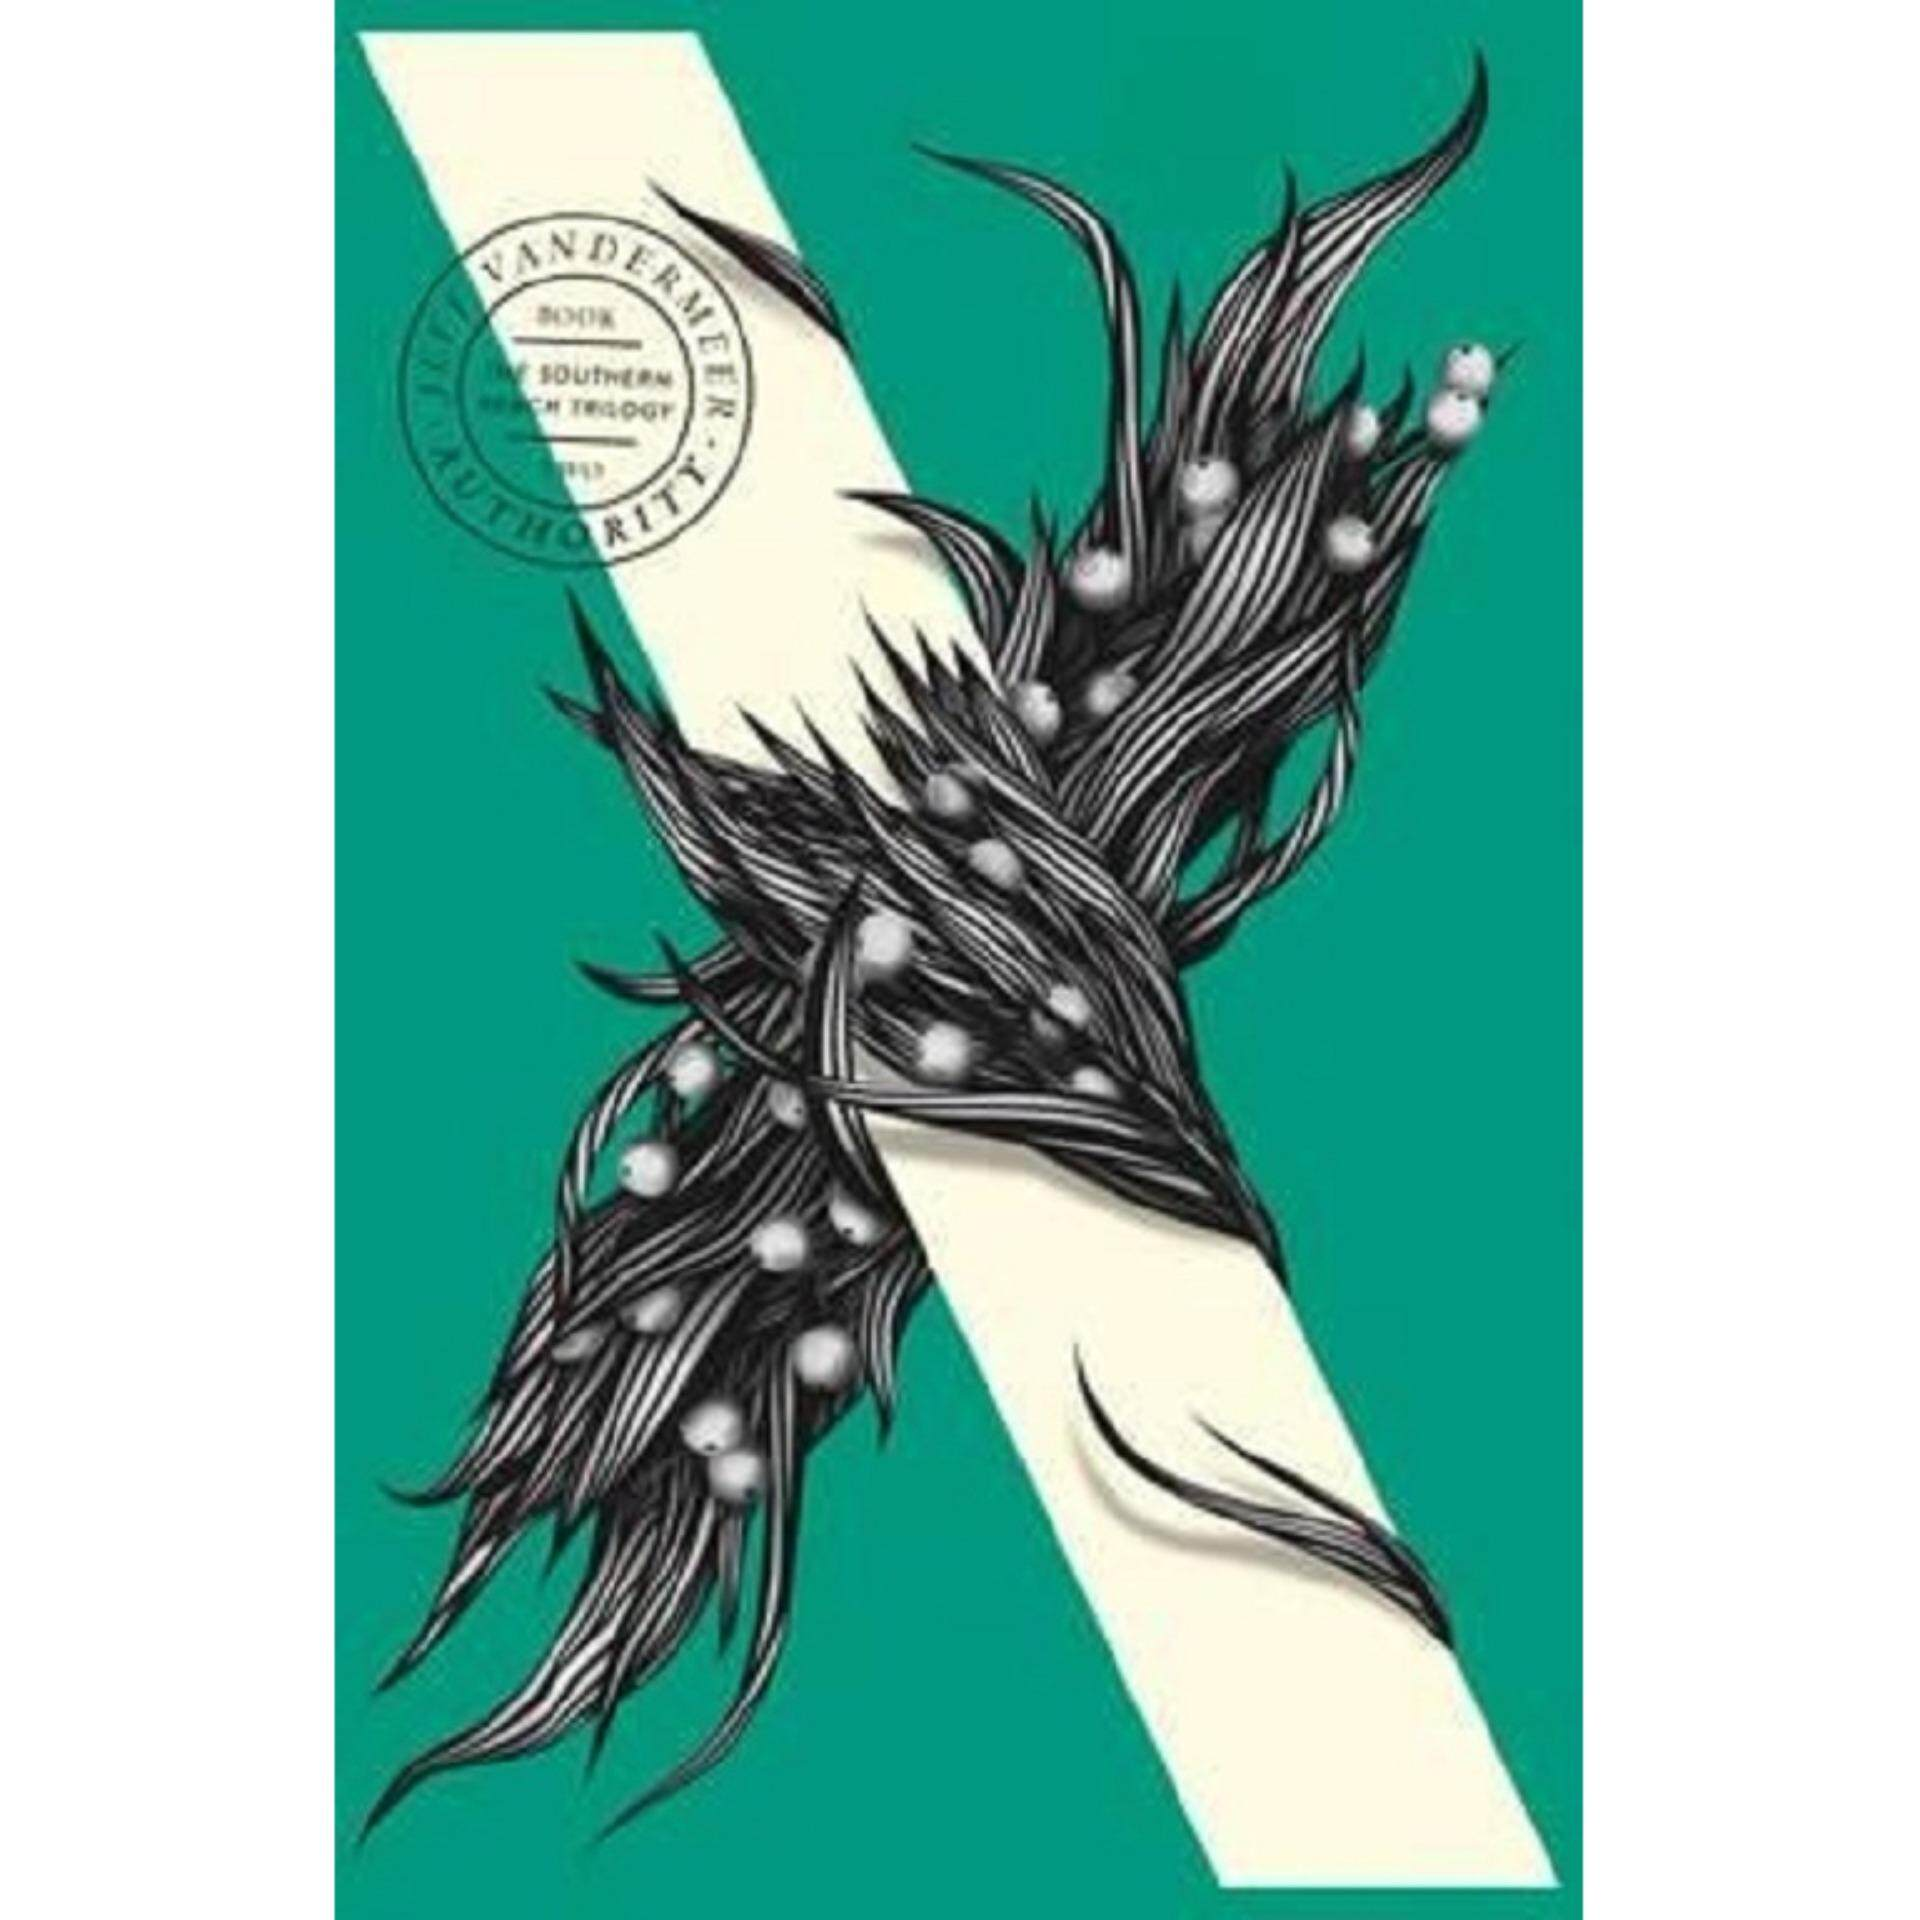 Authority:Book 2 ( The Southern Reach Trilogy)  Isbn: 9780008139117  Author:  Vandermeer, Jeff